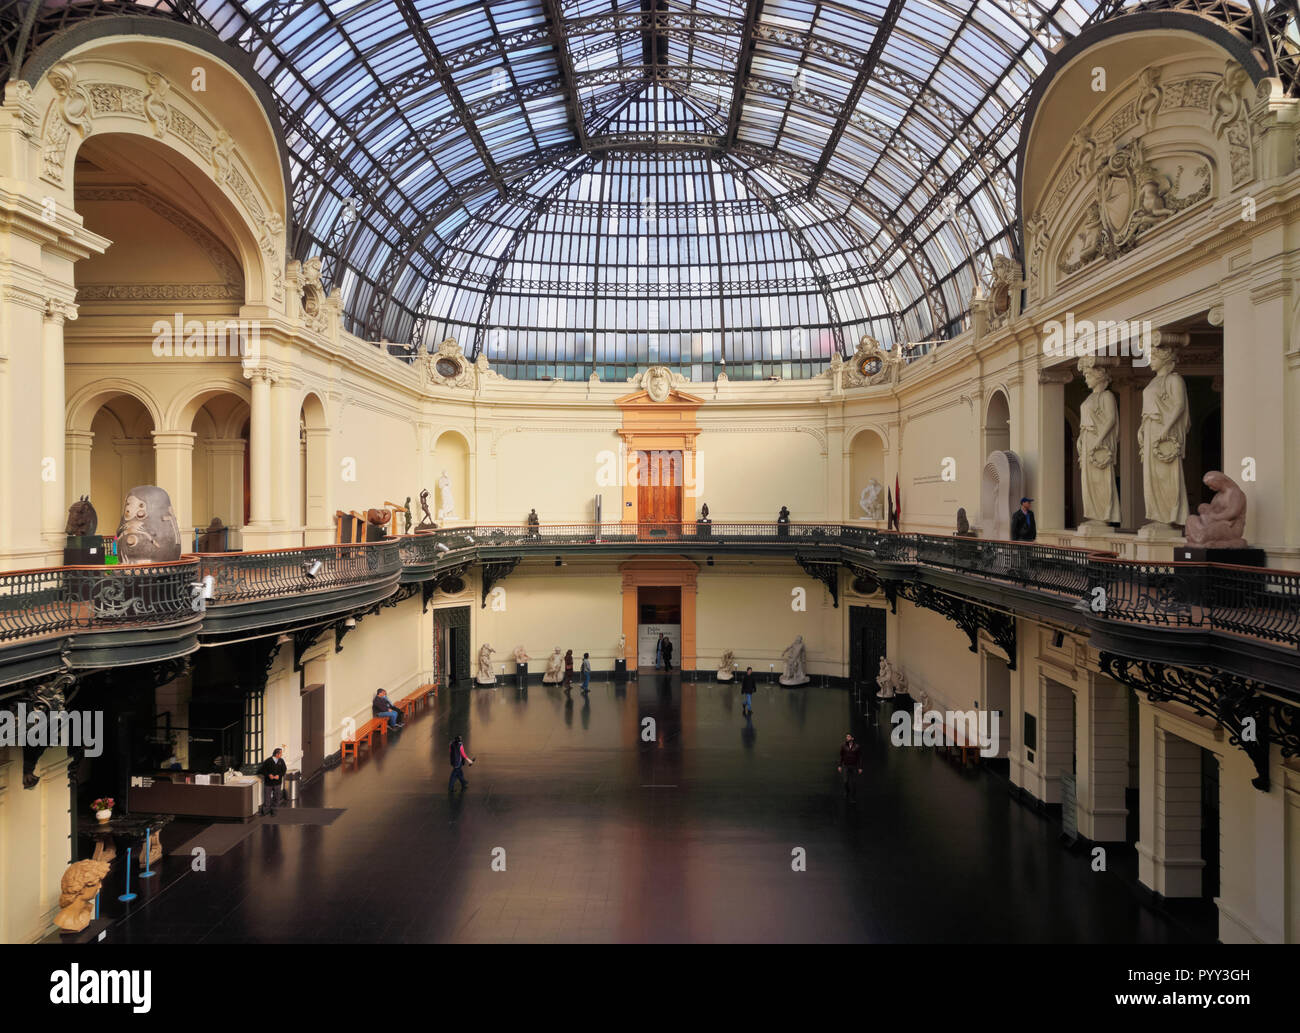 Chilean National Museum of Fine Arts, MNBA, interior, Santiago de Chile, Chile - Stock Image